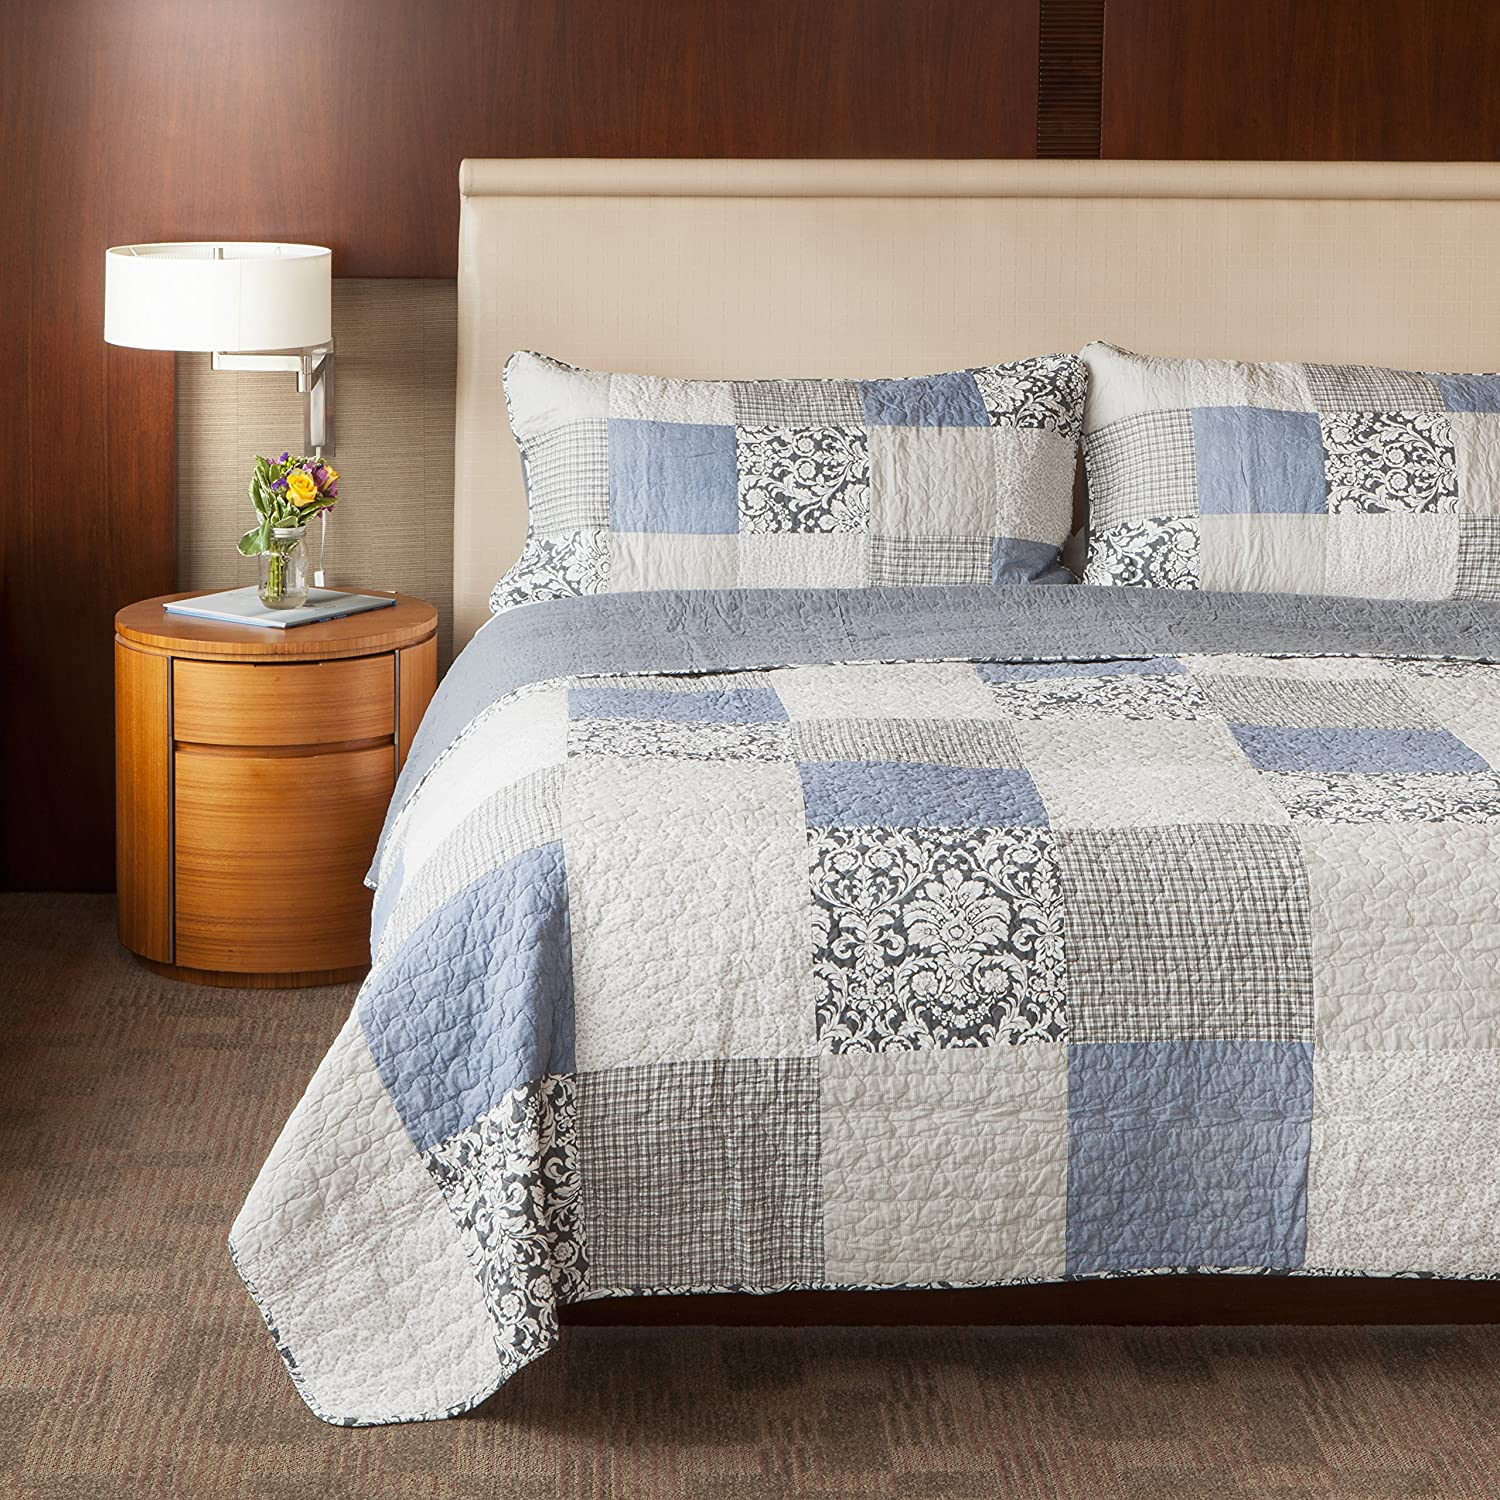 SLPR Sweet Dreams 3-Piece Patchwork Cotton Bedding Quilt Set - King with 2 Shams | Blue Country Quilted Bedspread